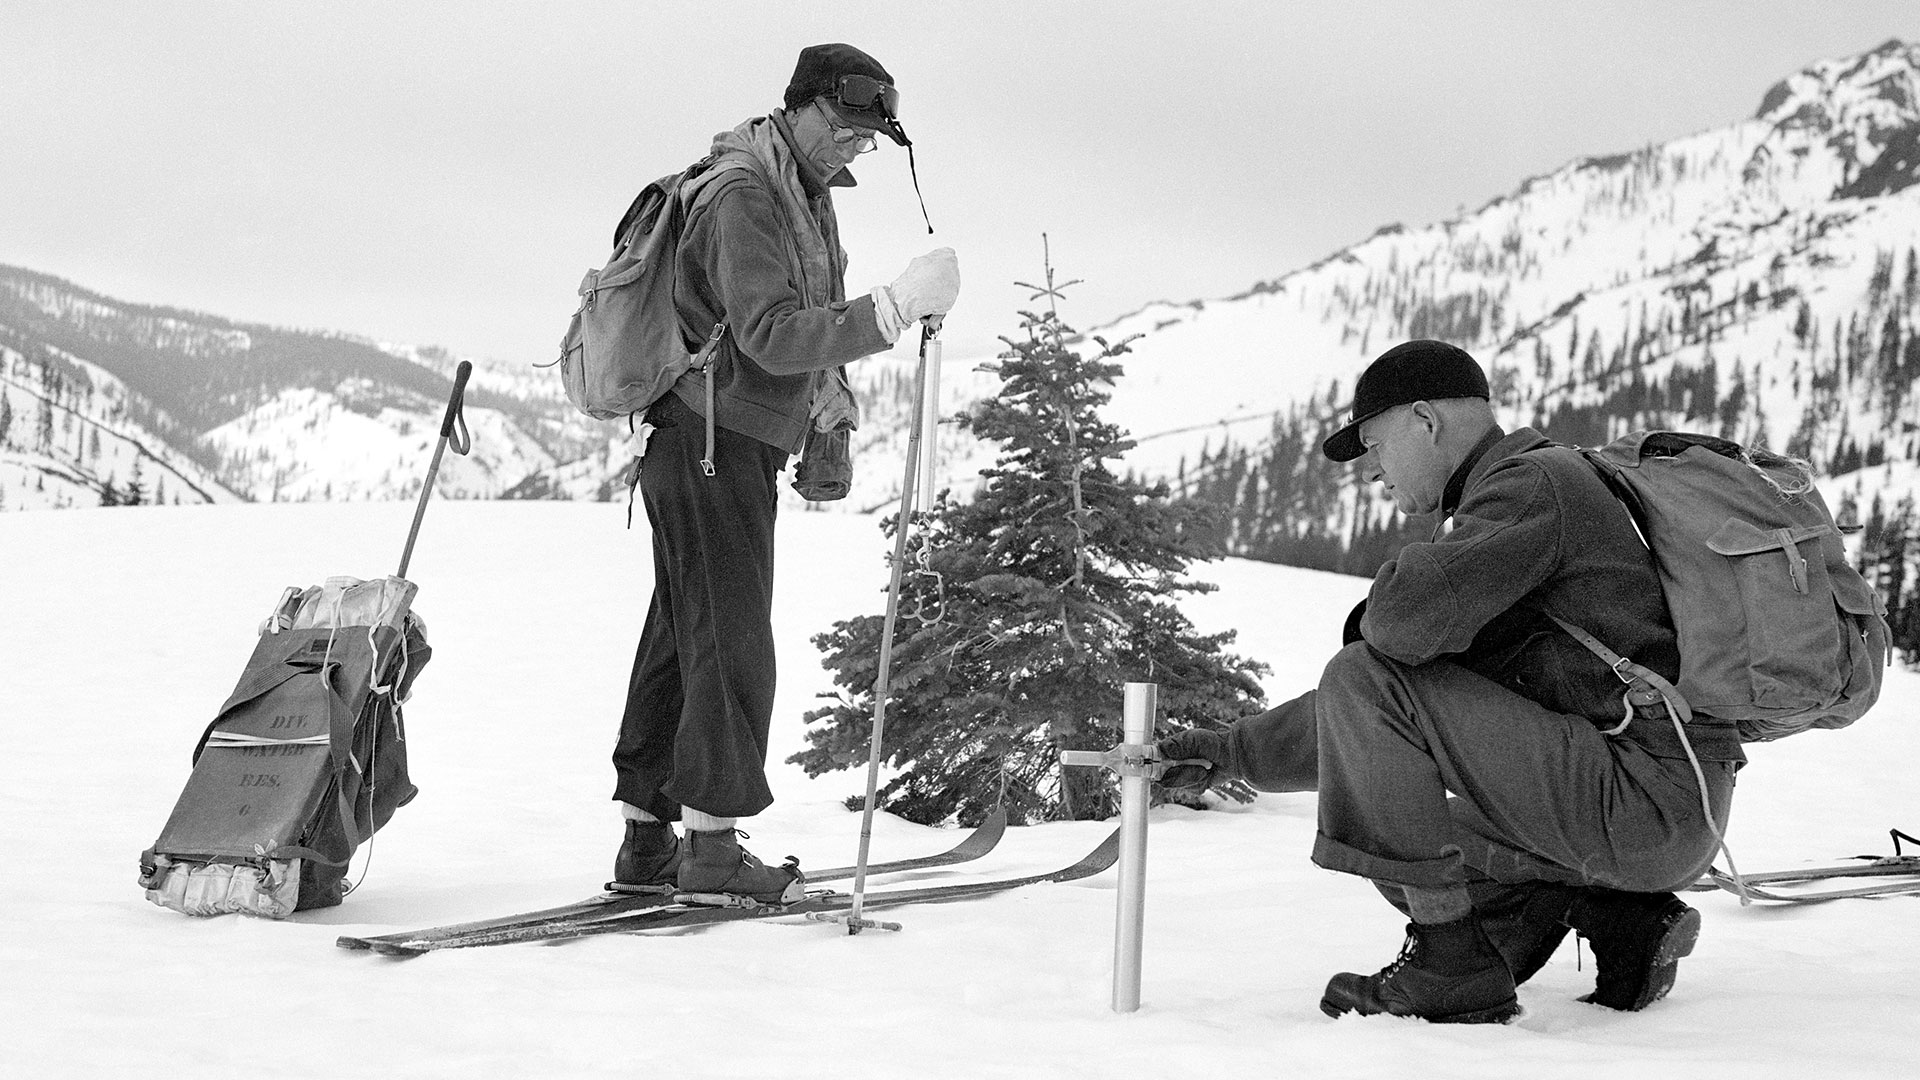 Photo: 1958 snow survey